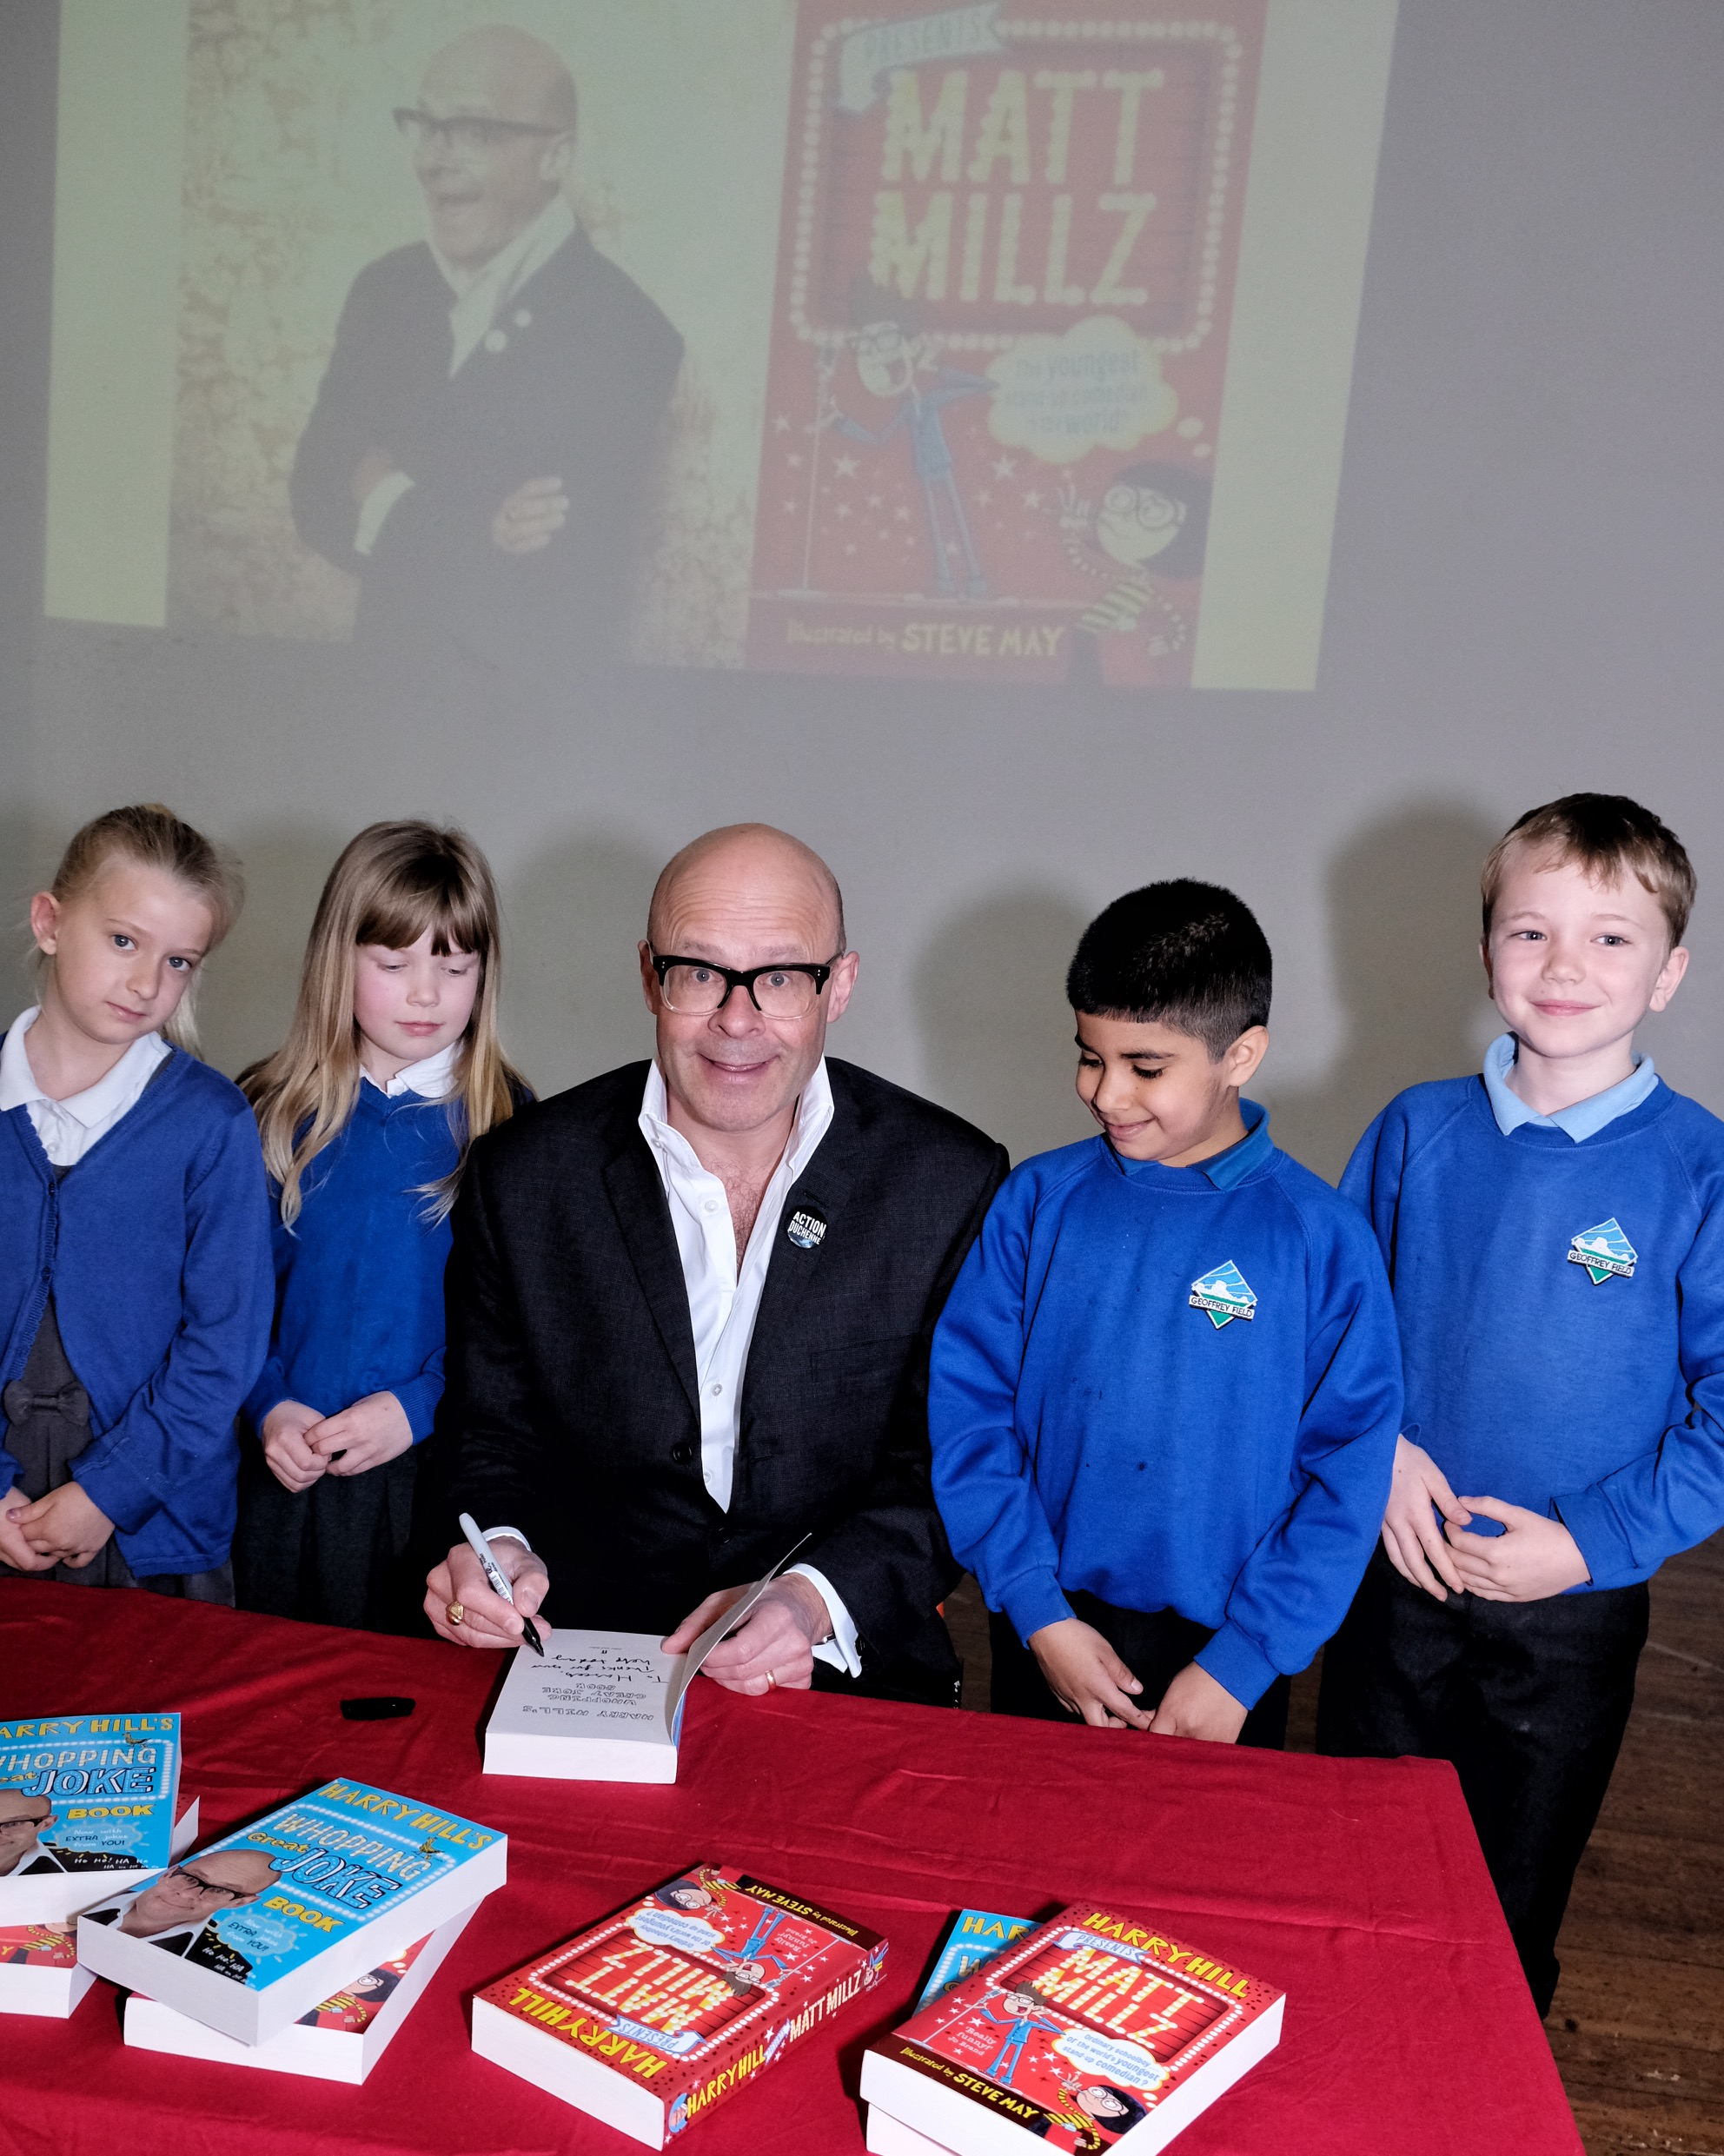 PICTURES: Harry Hill visits primary school to launch new children's book